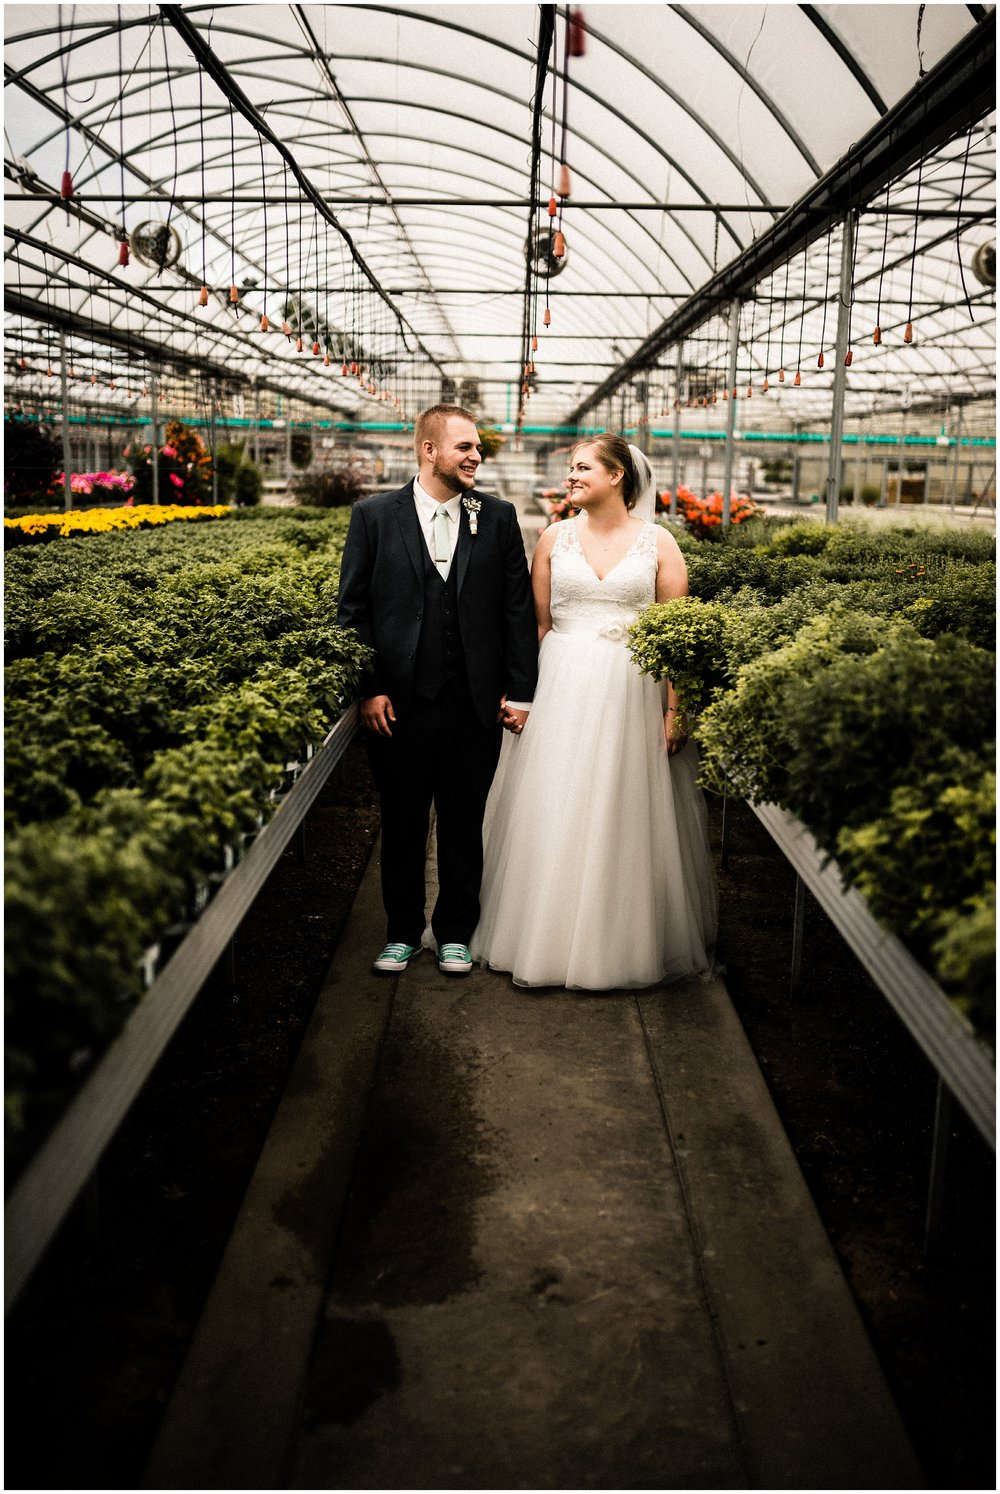 Zach + Sara | Just Married #kyleepaigephotography_1487.jpg